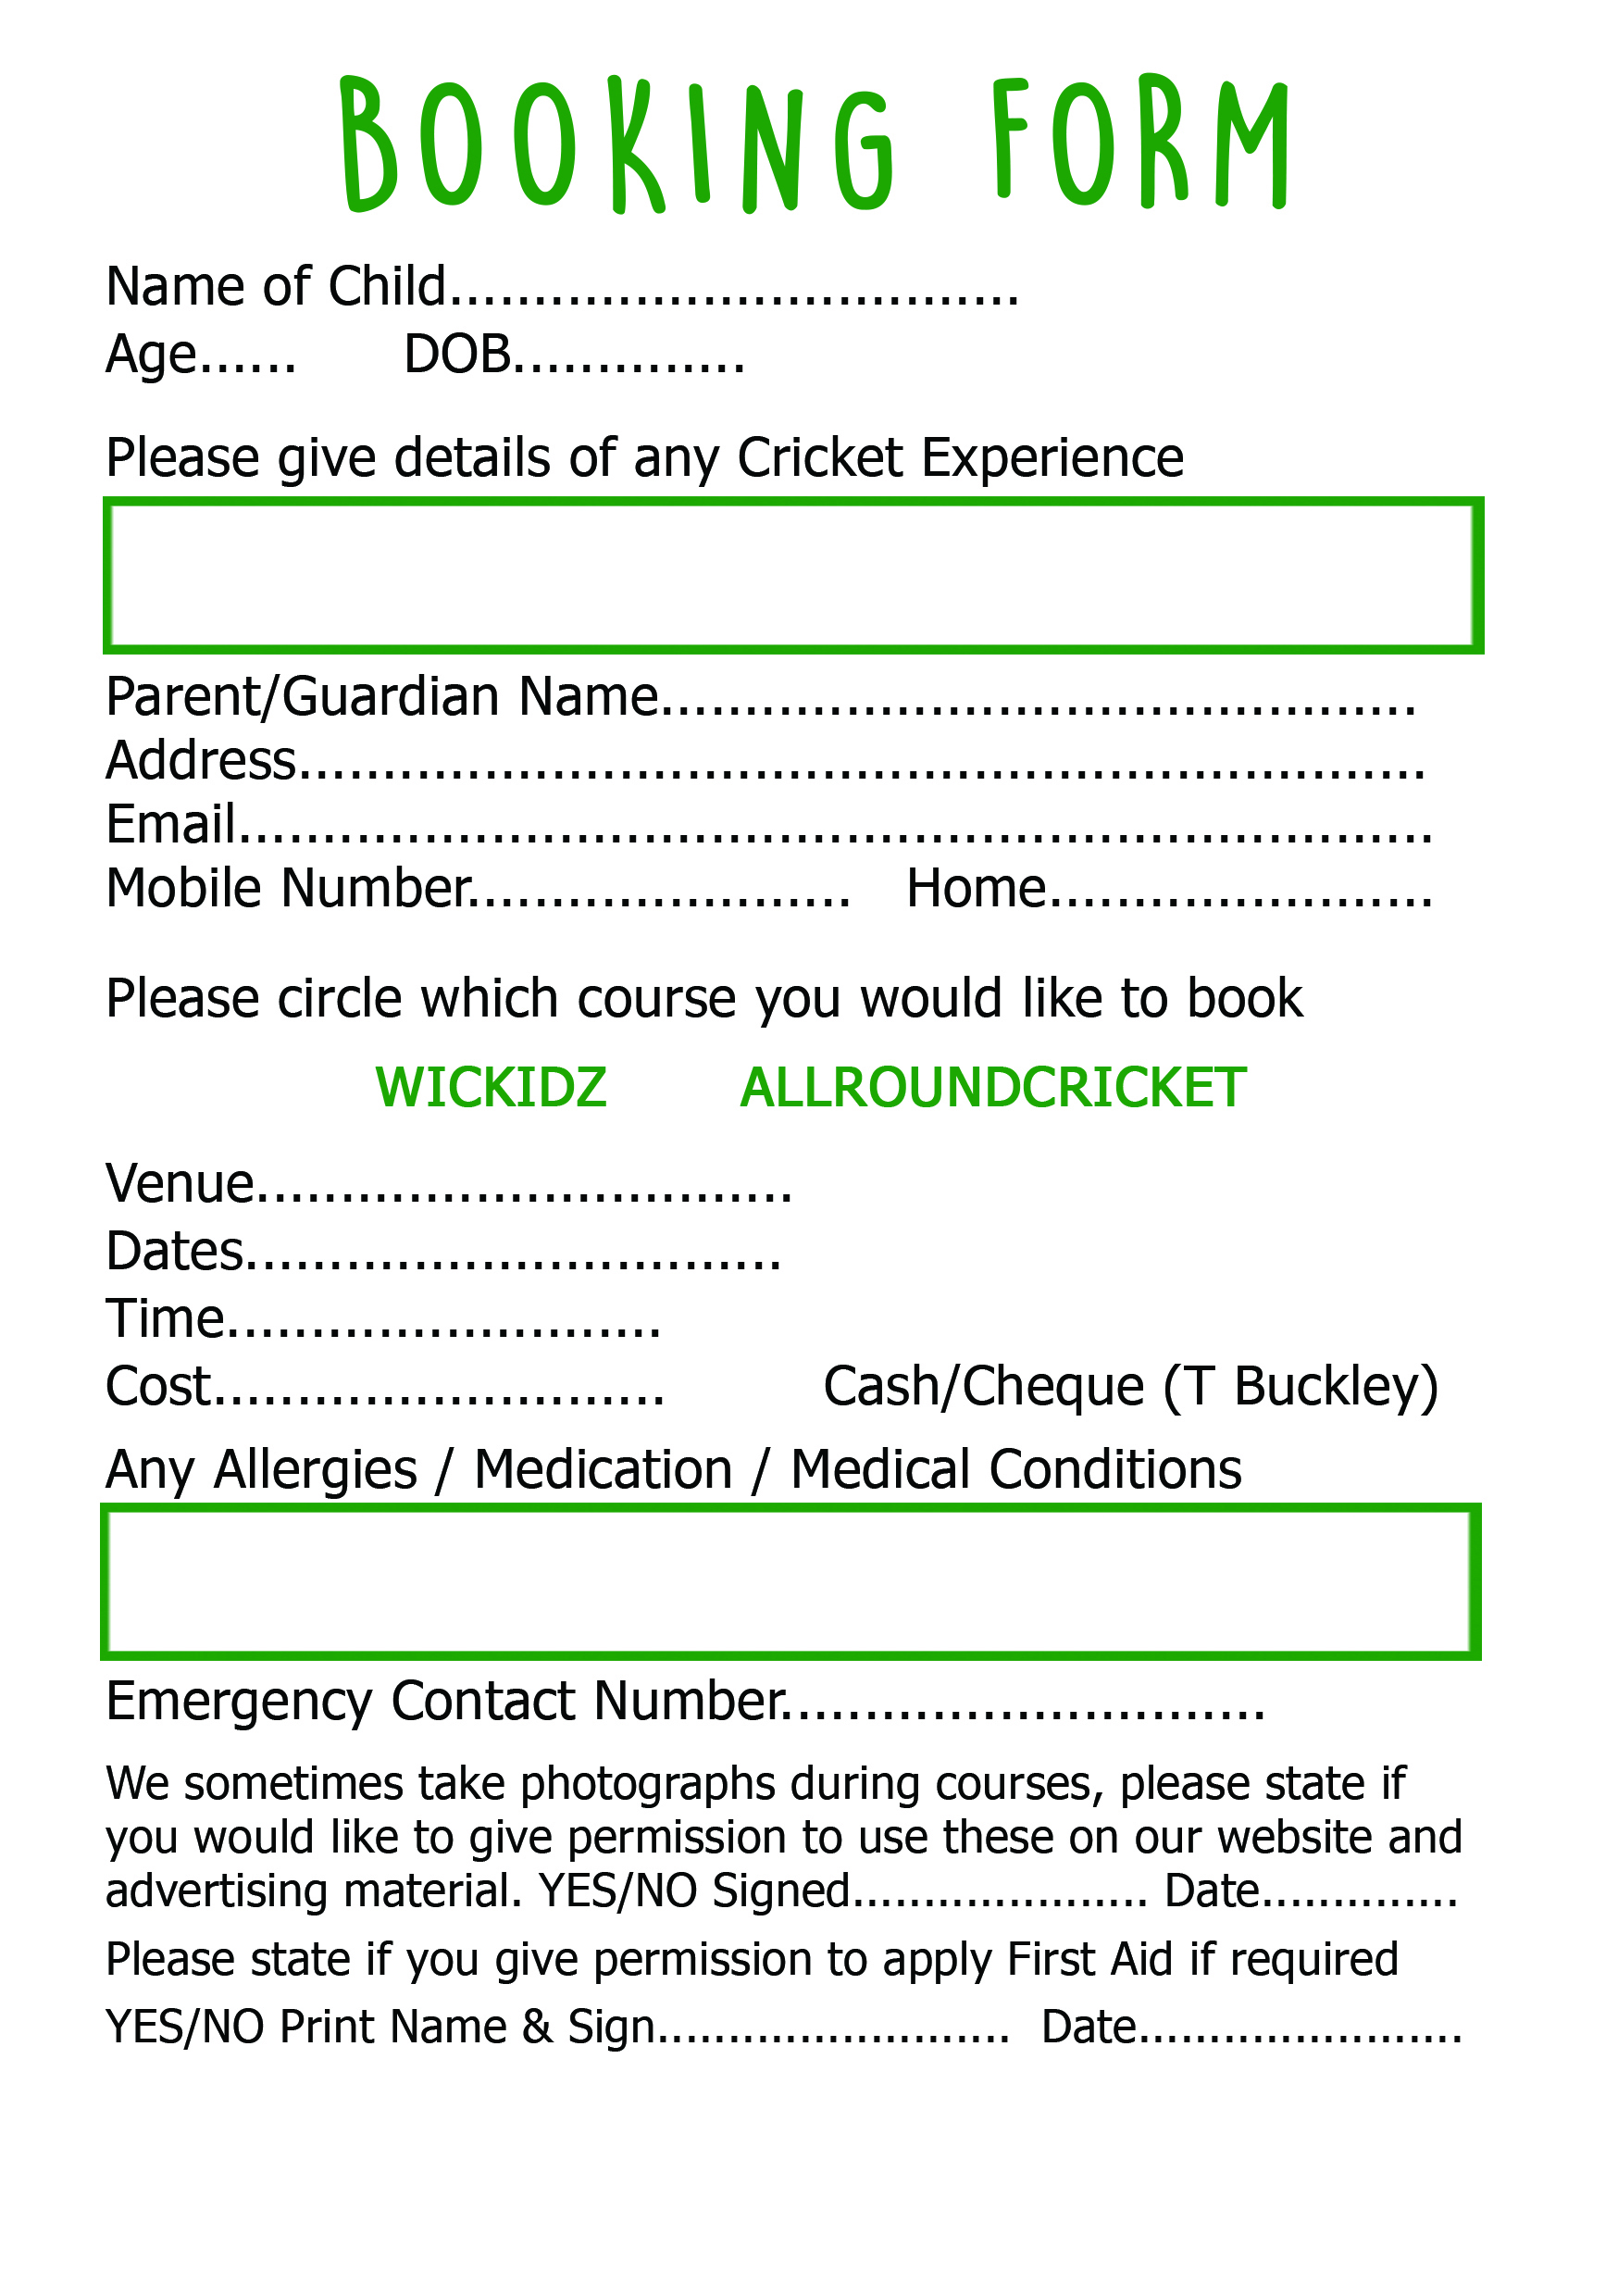 Booking forms allroundcricketcoaching download booking form inc consent thecheapjerseys Choice Image